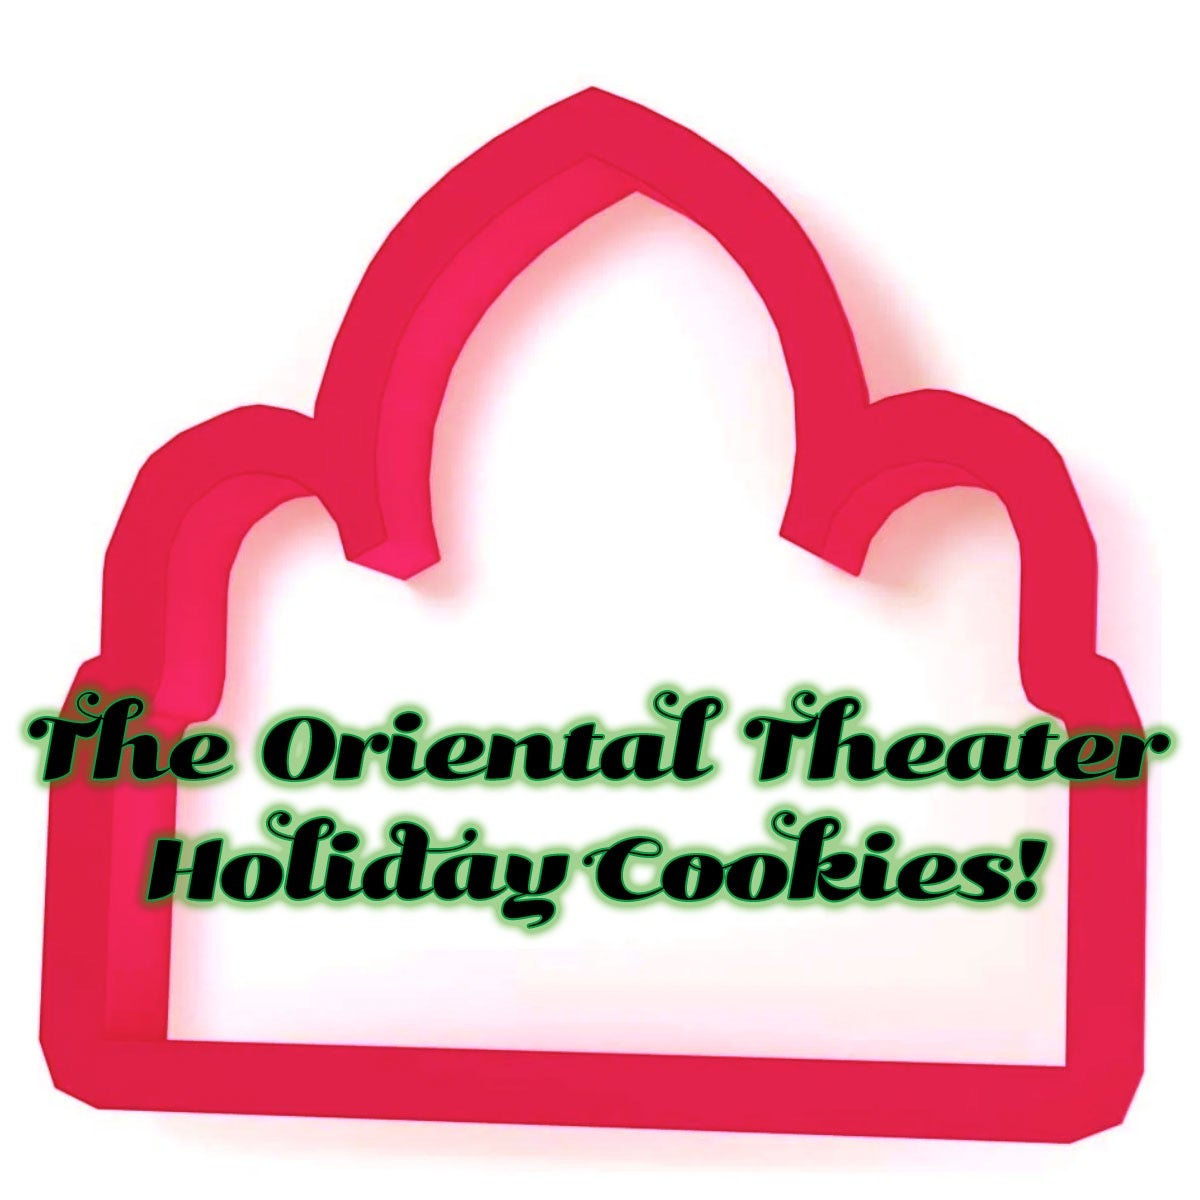 Image of Holiday Cookies from The O